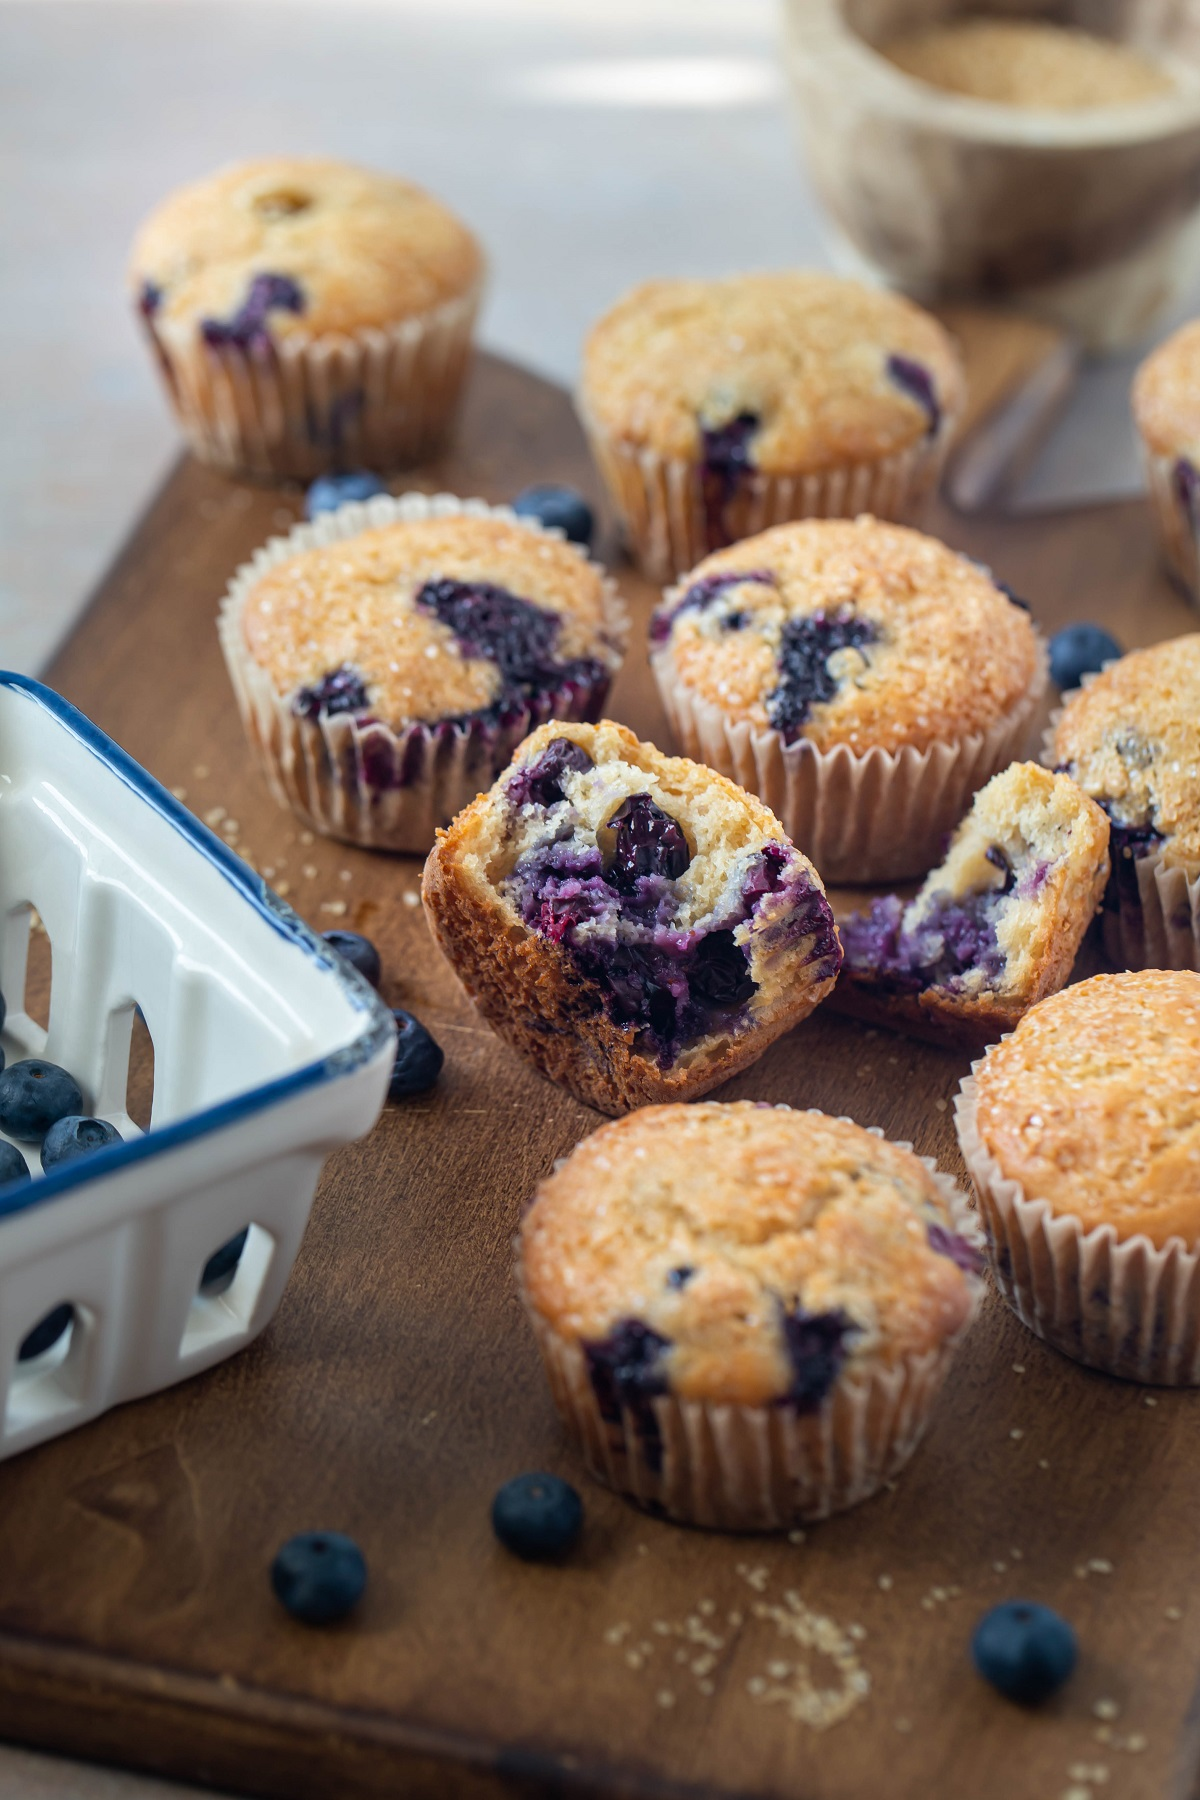 several blueberry muffins on wood platter with one open